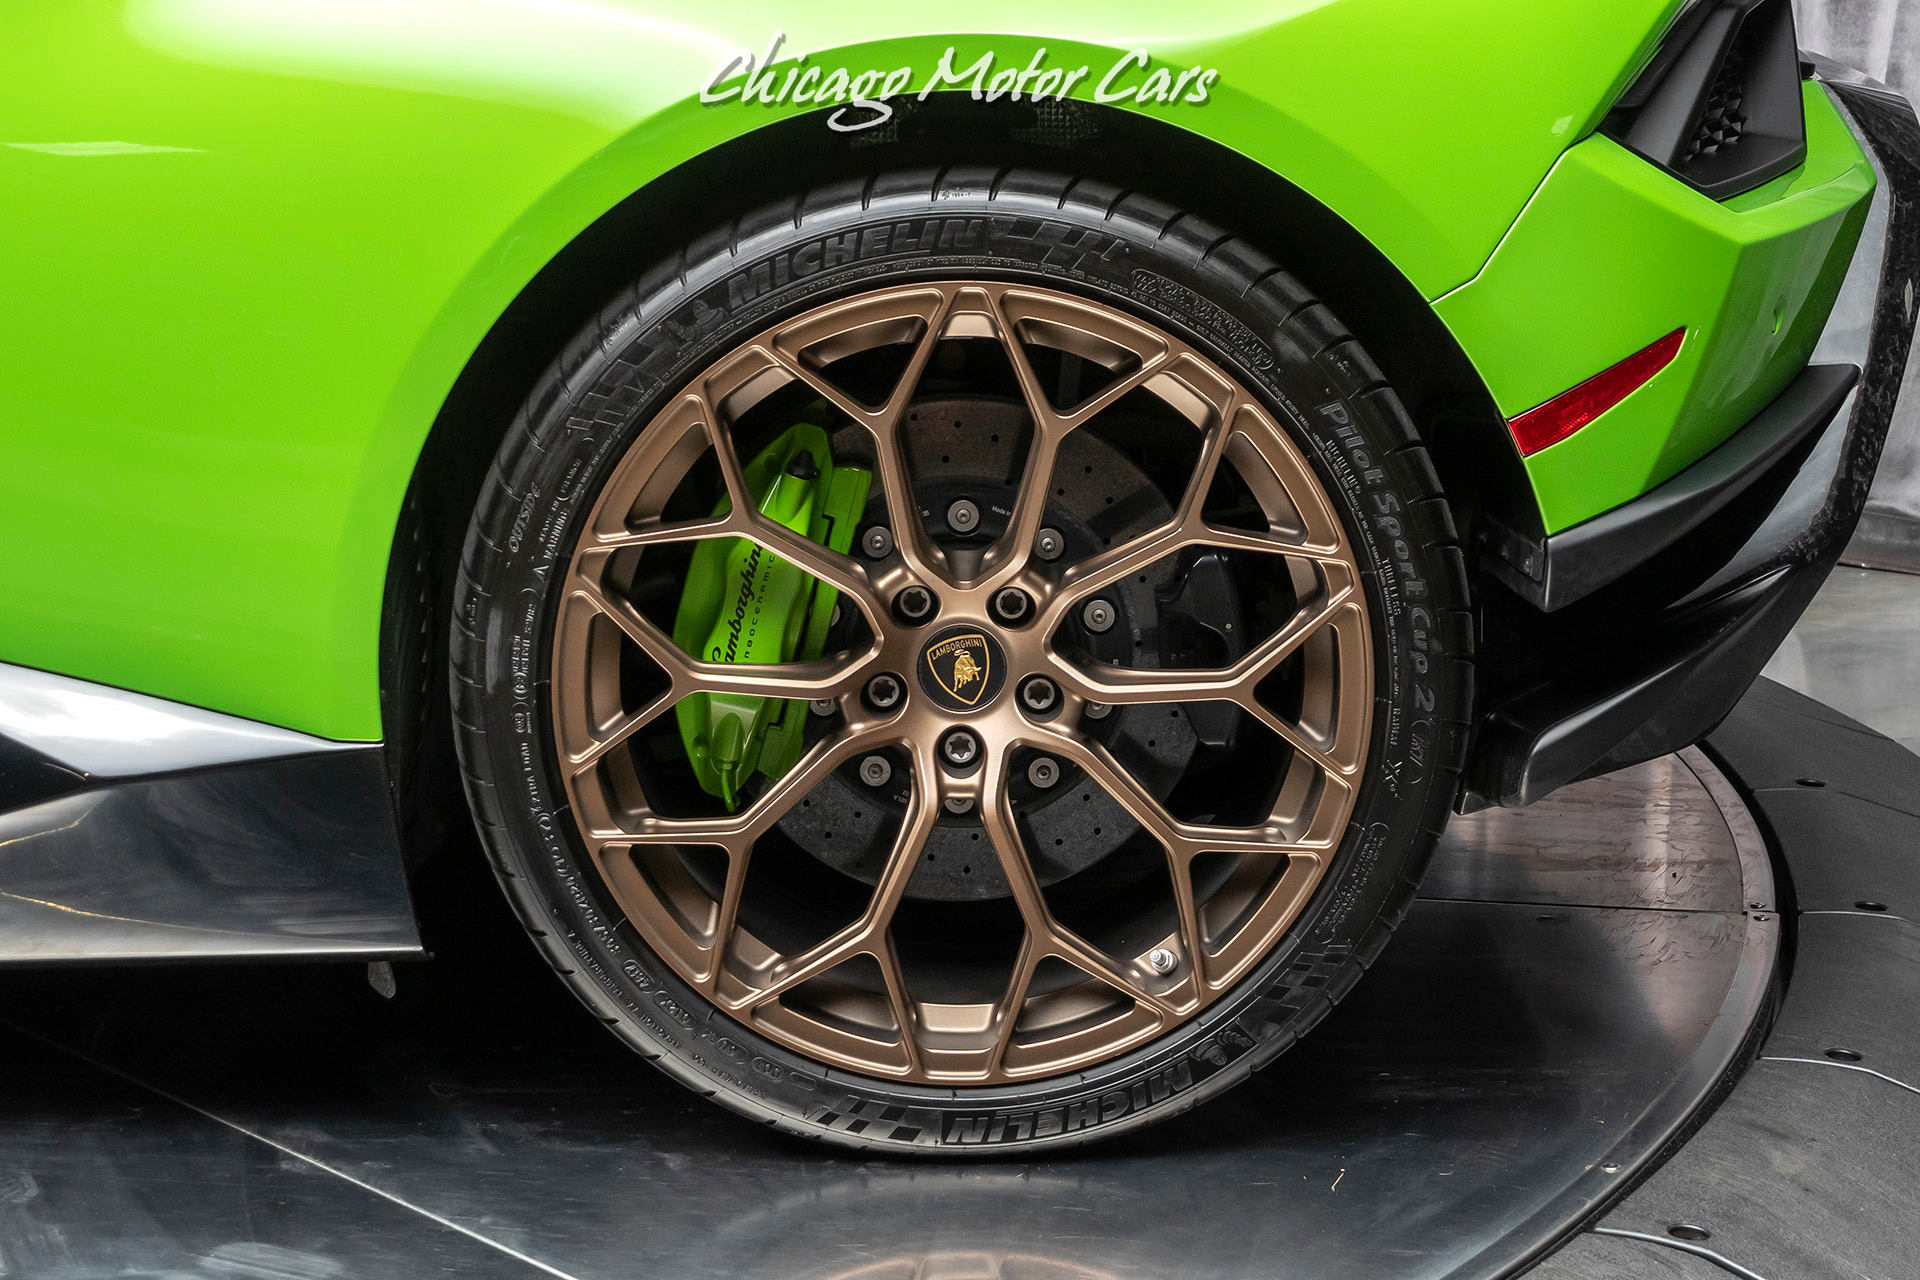 Used-2018-Lamborghini-Huracan-LP640-4-Performante-Coupe-VERDE-MANTIS-FORGED-CARBON